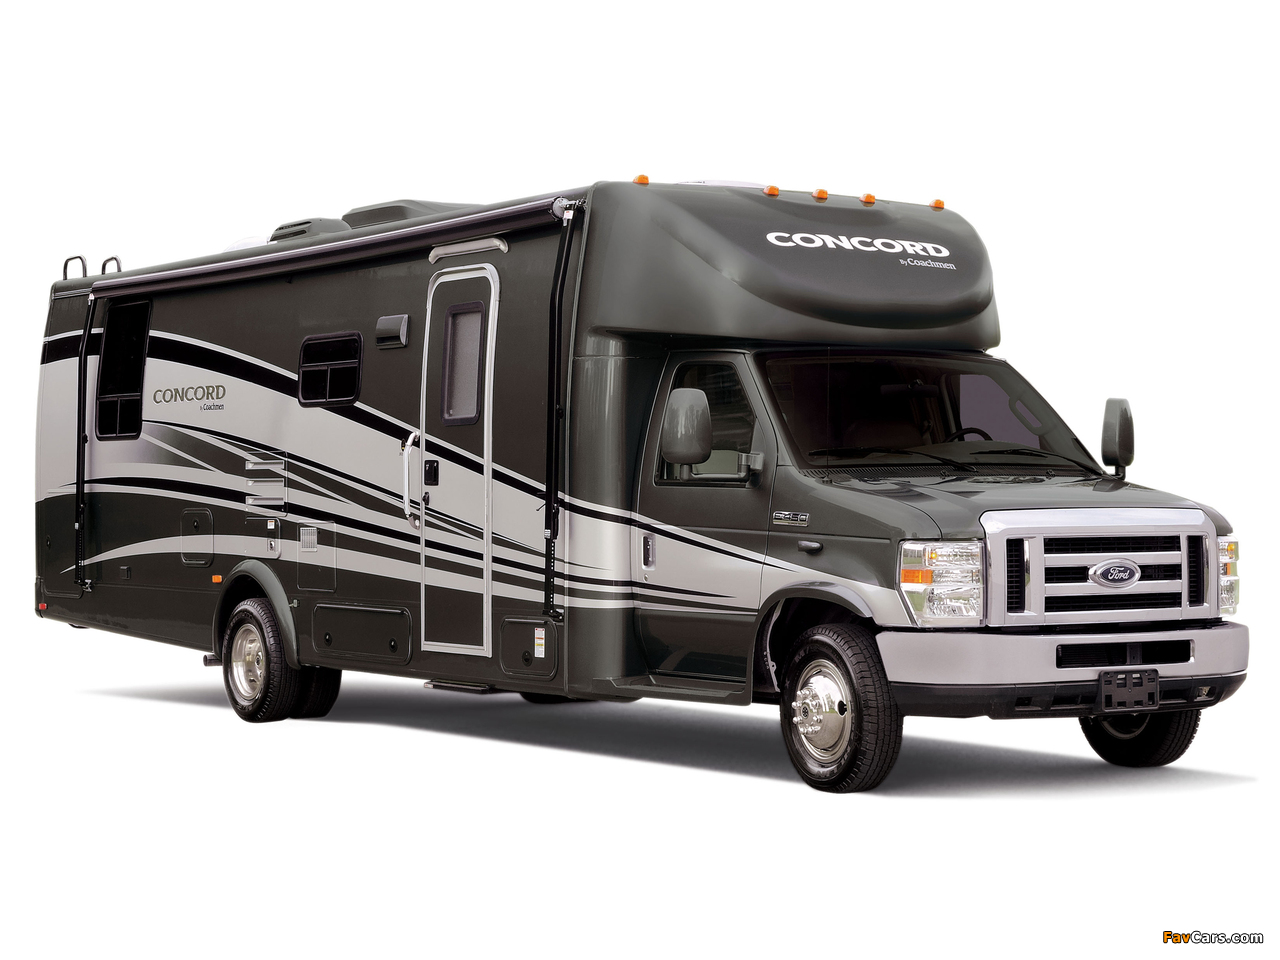 Images of Coachmen Concord 300 TS 2011 (1280 x 960)